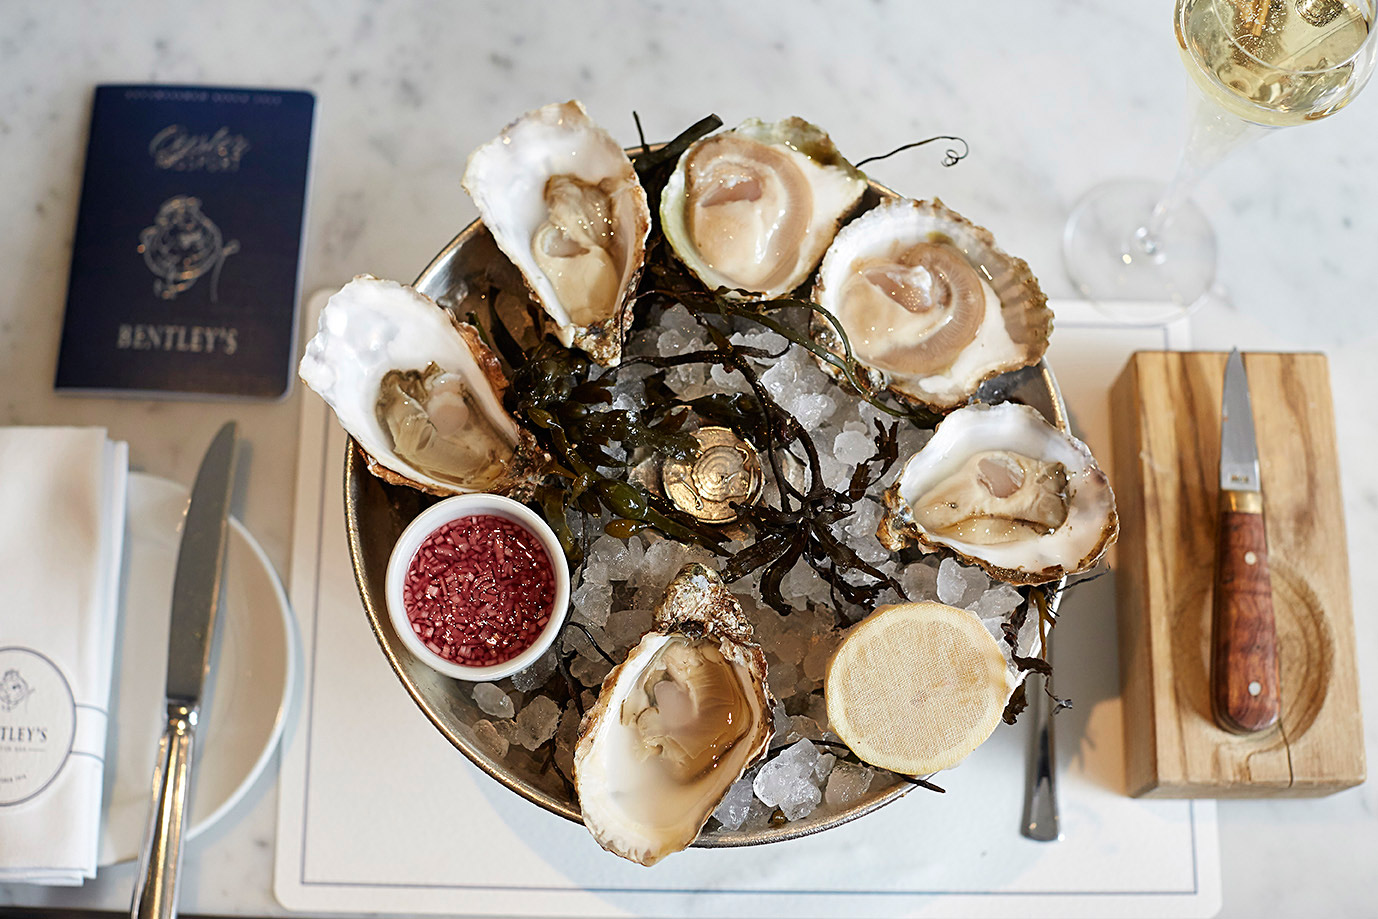 Bentley's Oyster Bar & Grill - 100 Years Of Fizz And Oyster Shucking